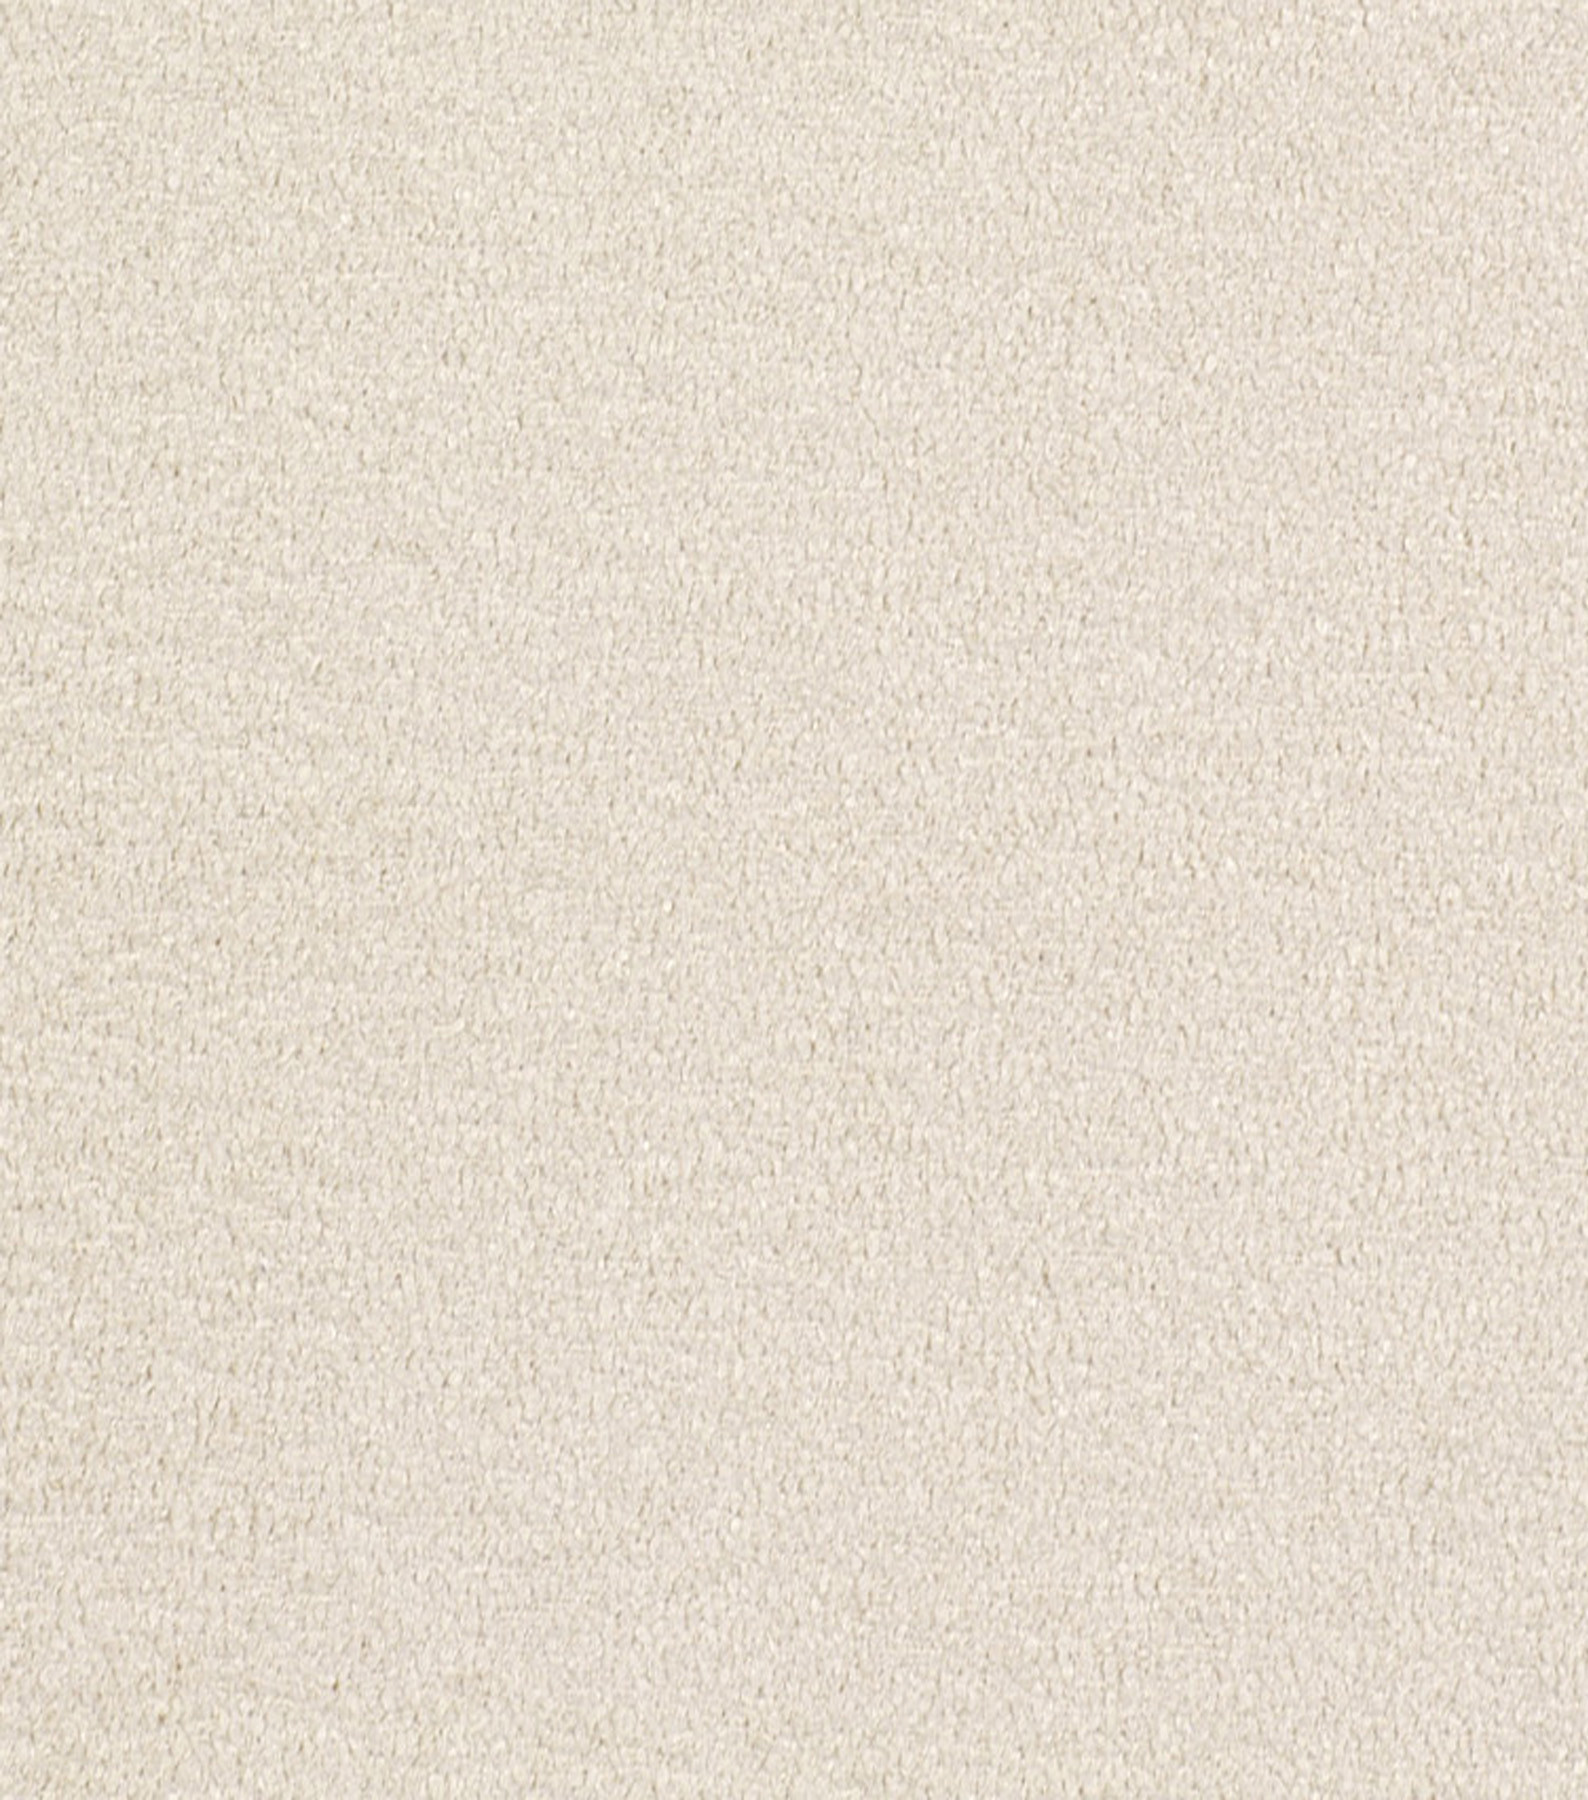 Home Decor 8\u0022x8\u0022 Fabric Swatch-Solid Fabric Signature Series Pop Oatmeal